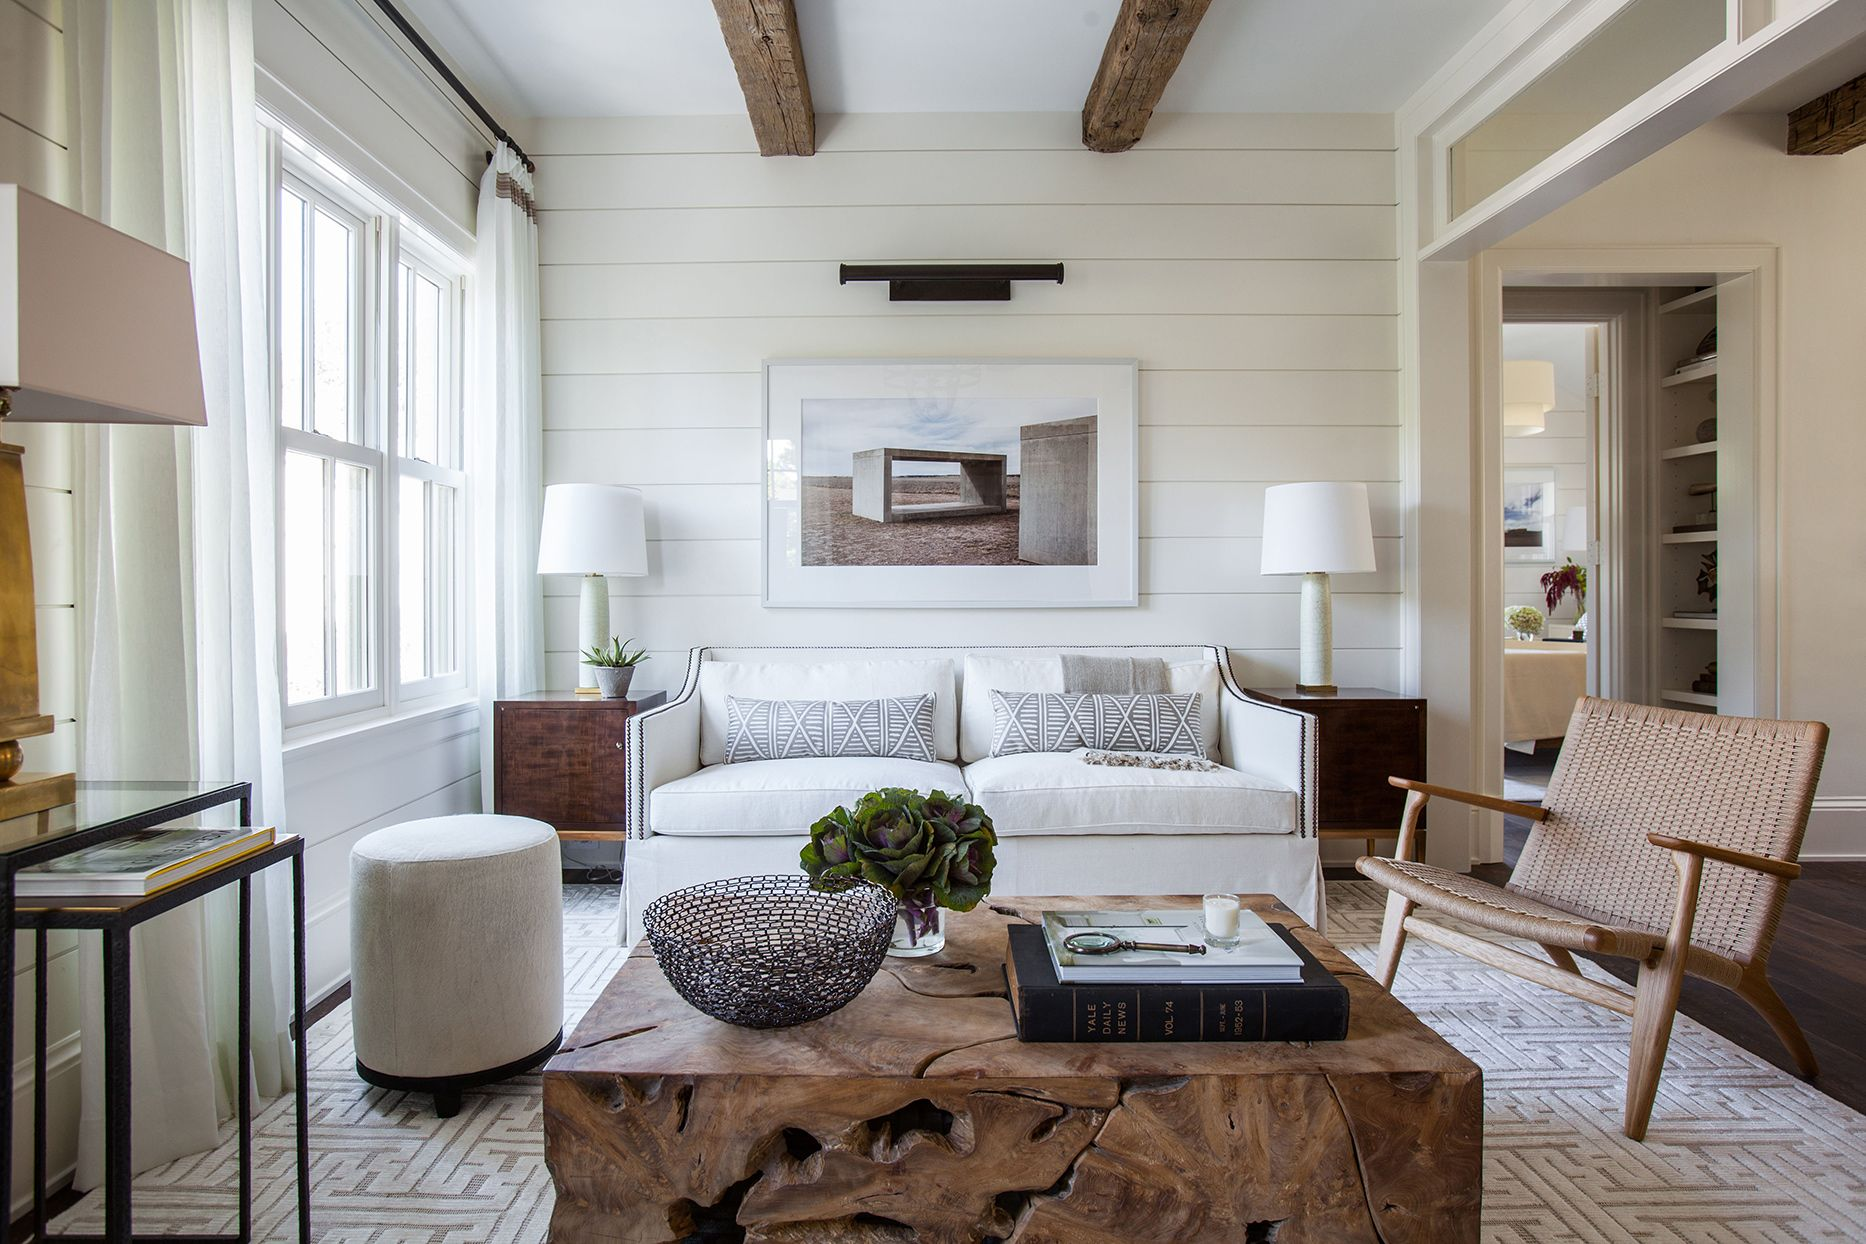 Marie Flannigan Cloud White 15 Soothing Paint Colors To Try Now According To Designers Better Homes Gardens #soothing #living #room #colors